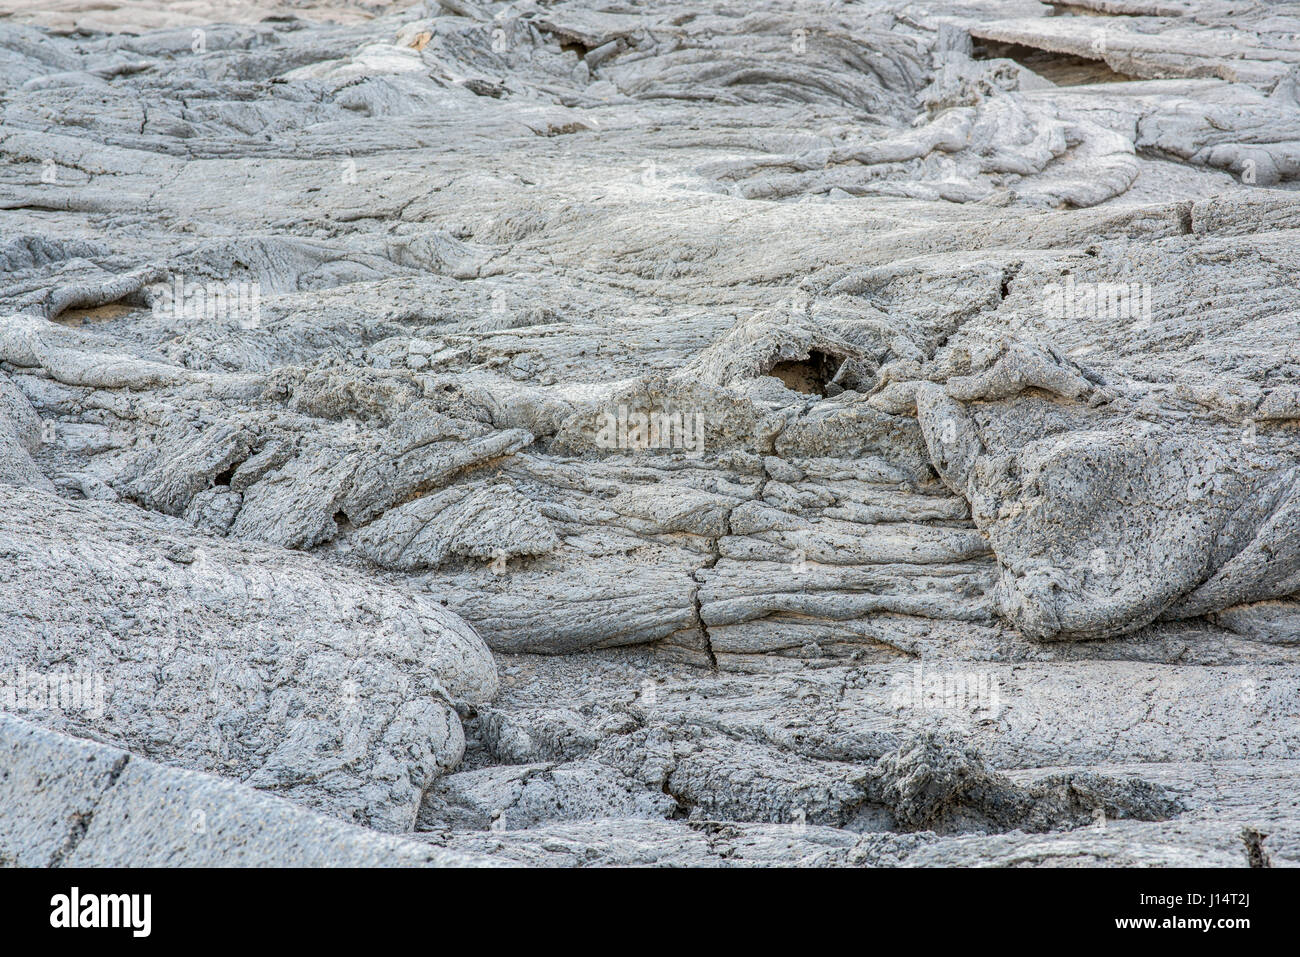 AFAR REGION, ETHIOPIA: Lava after it has cooled. HAVE YOU ever wondered what it must look like to stare into the - Stock Image